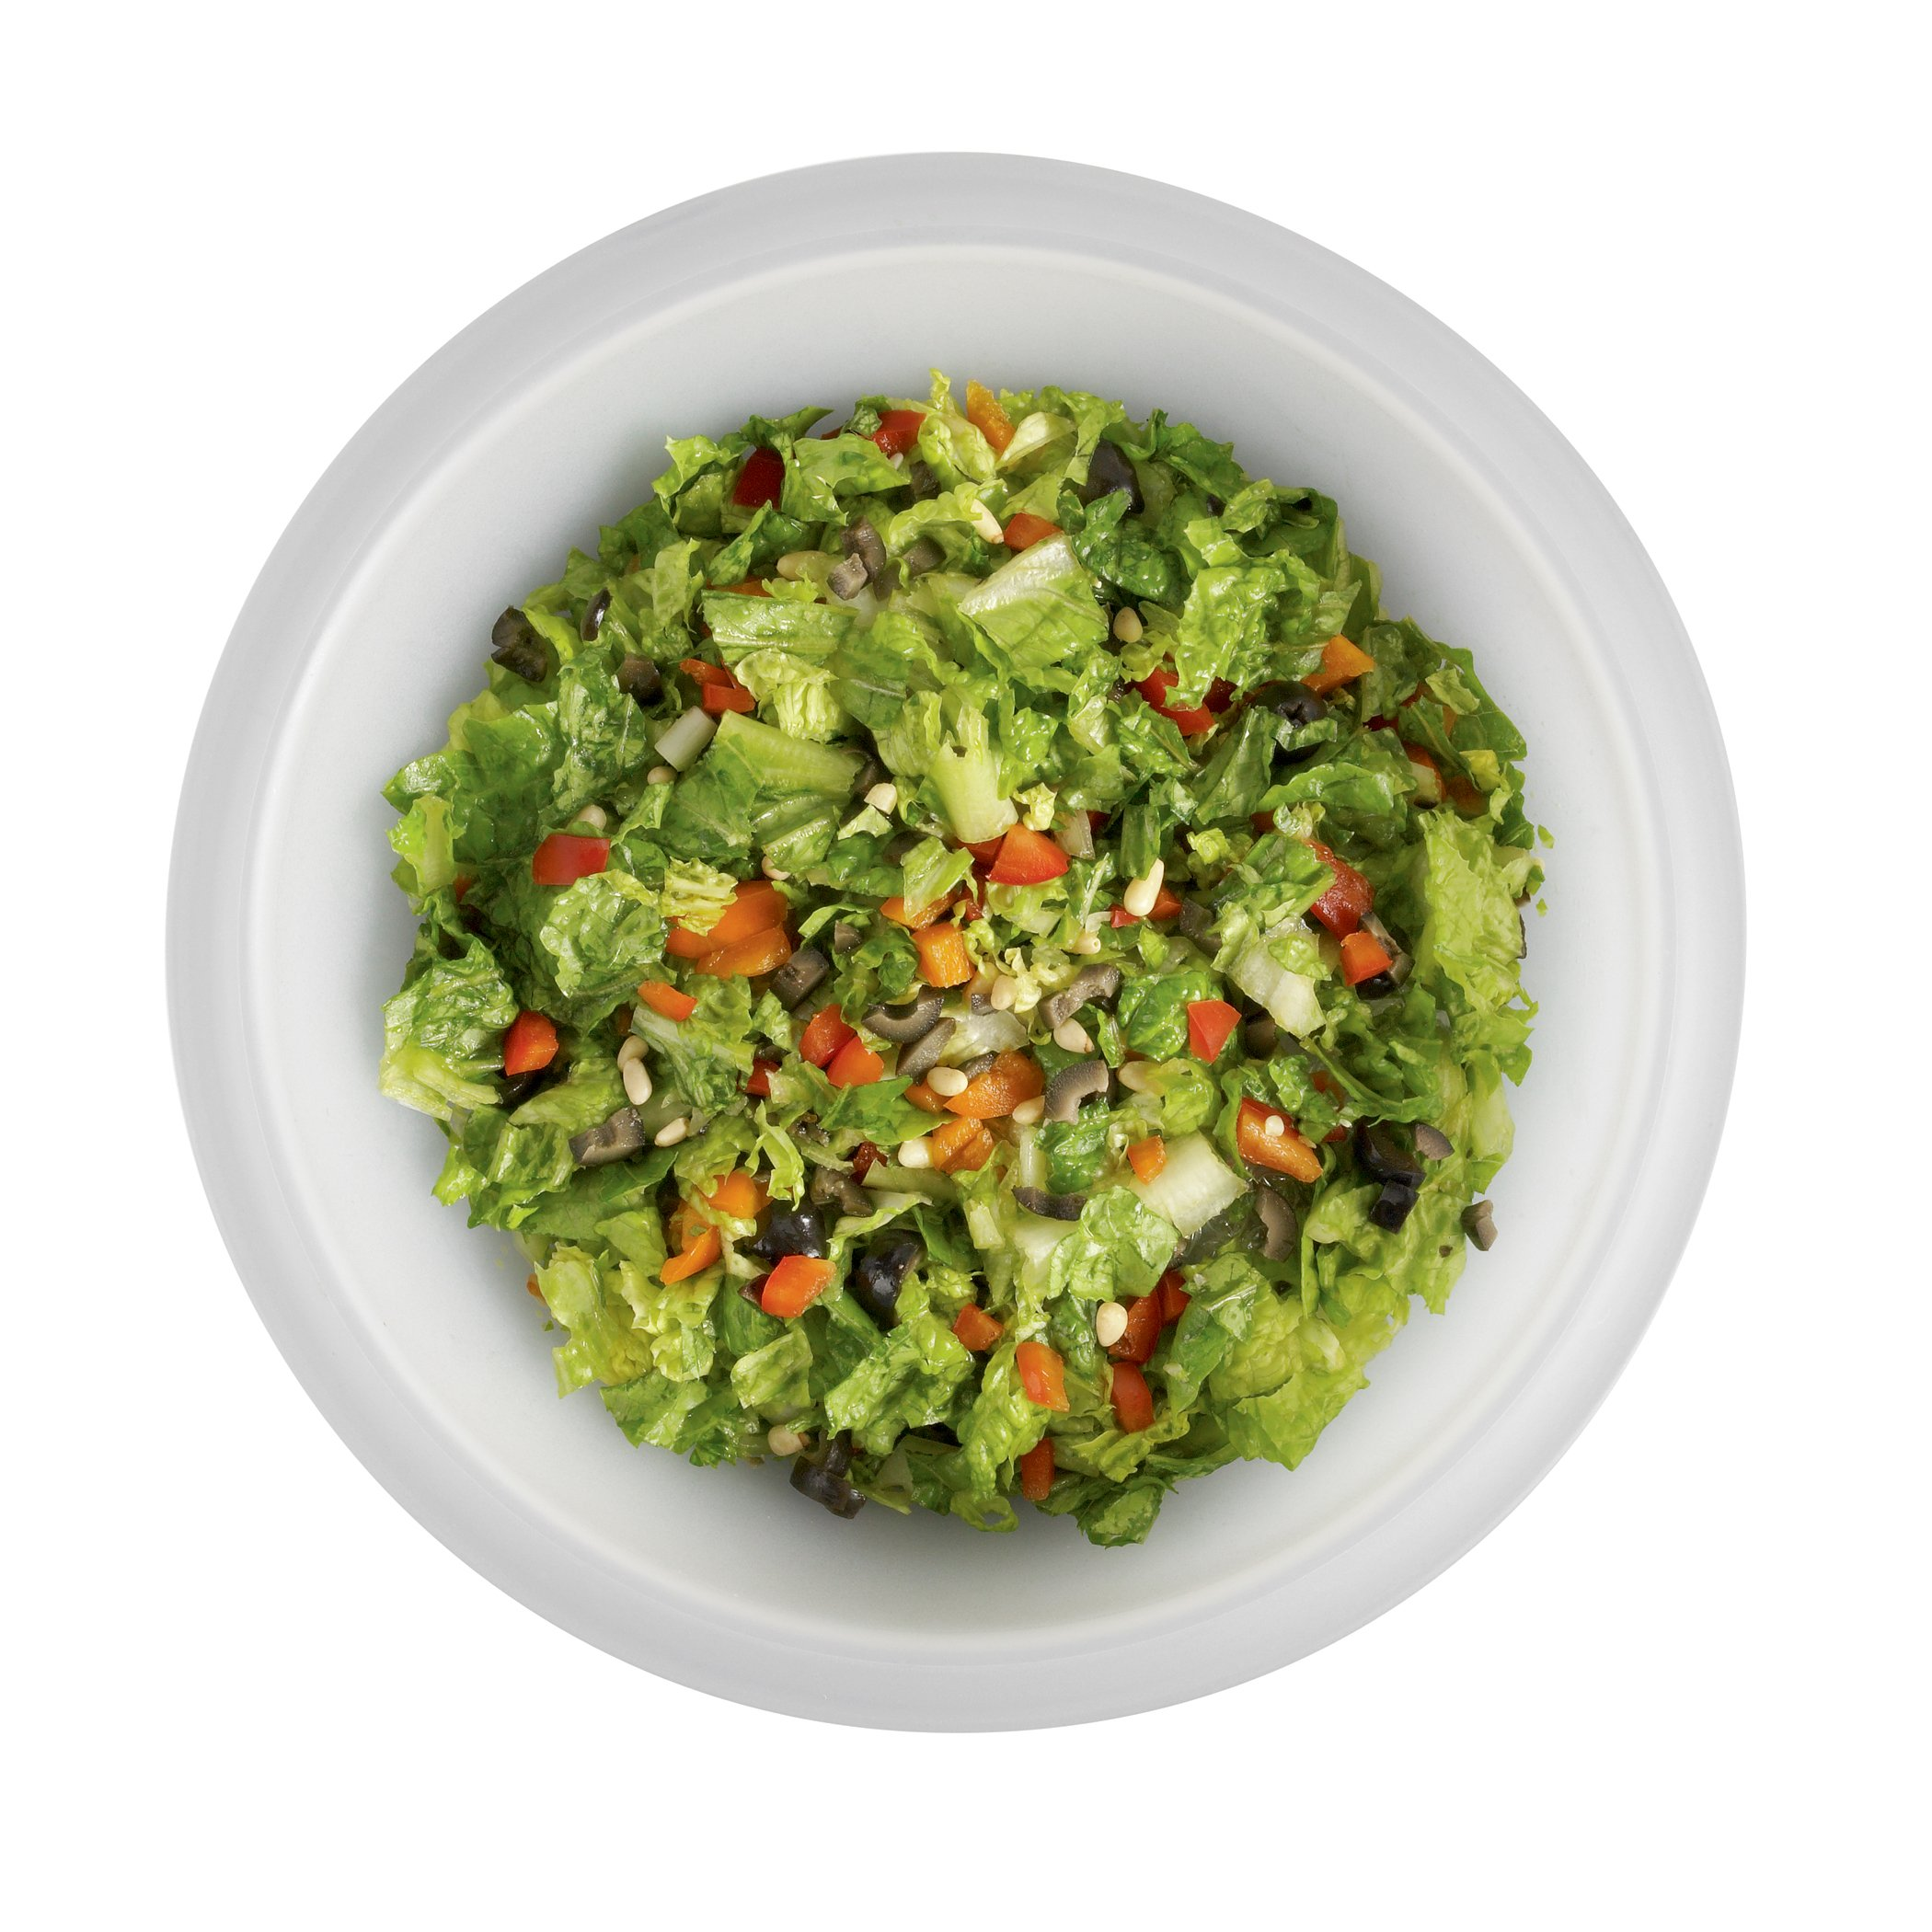 OXO Good Grips Salad Chopper and Bowl by OXO (Image #5)